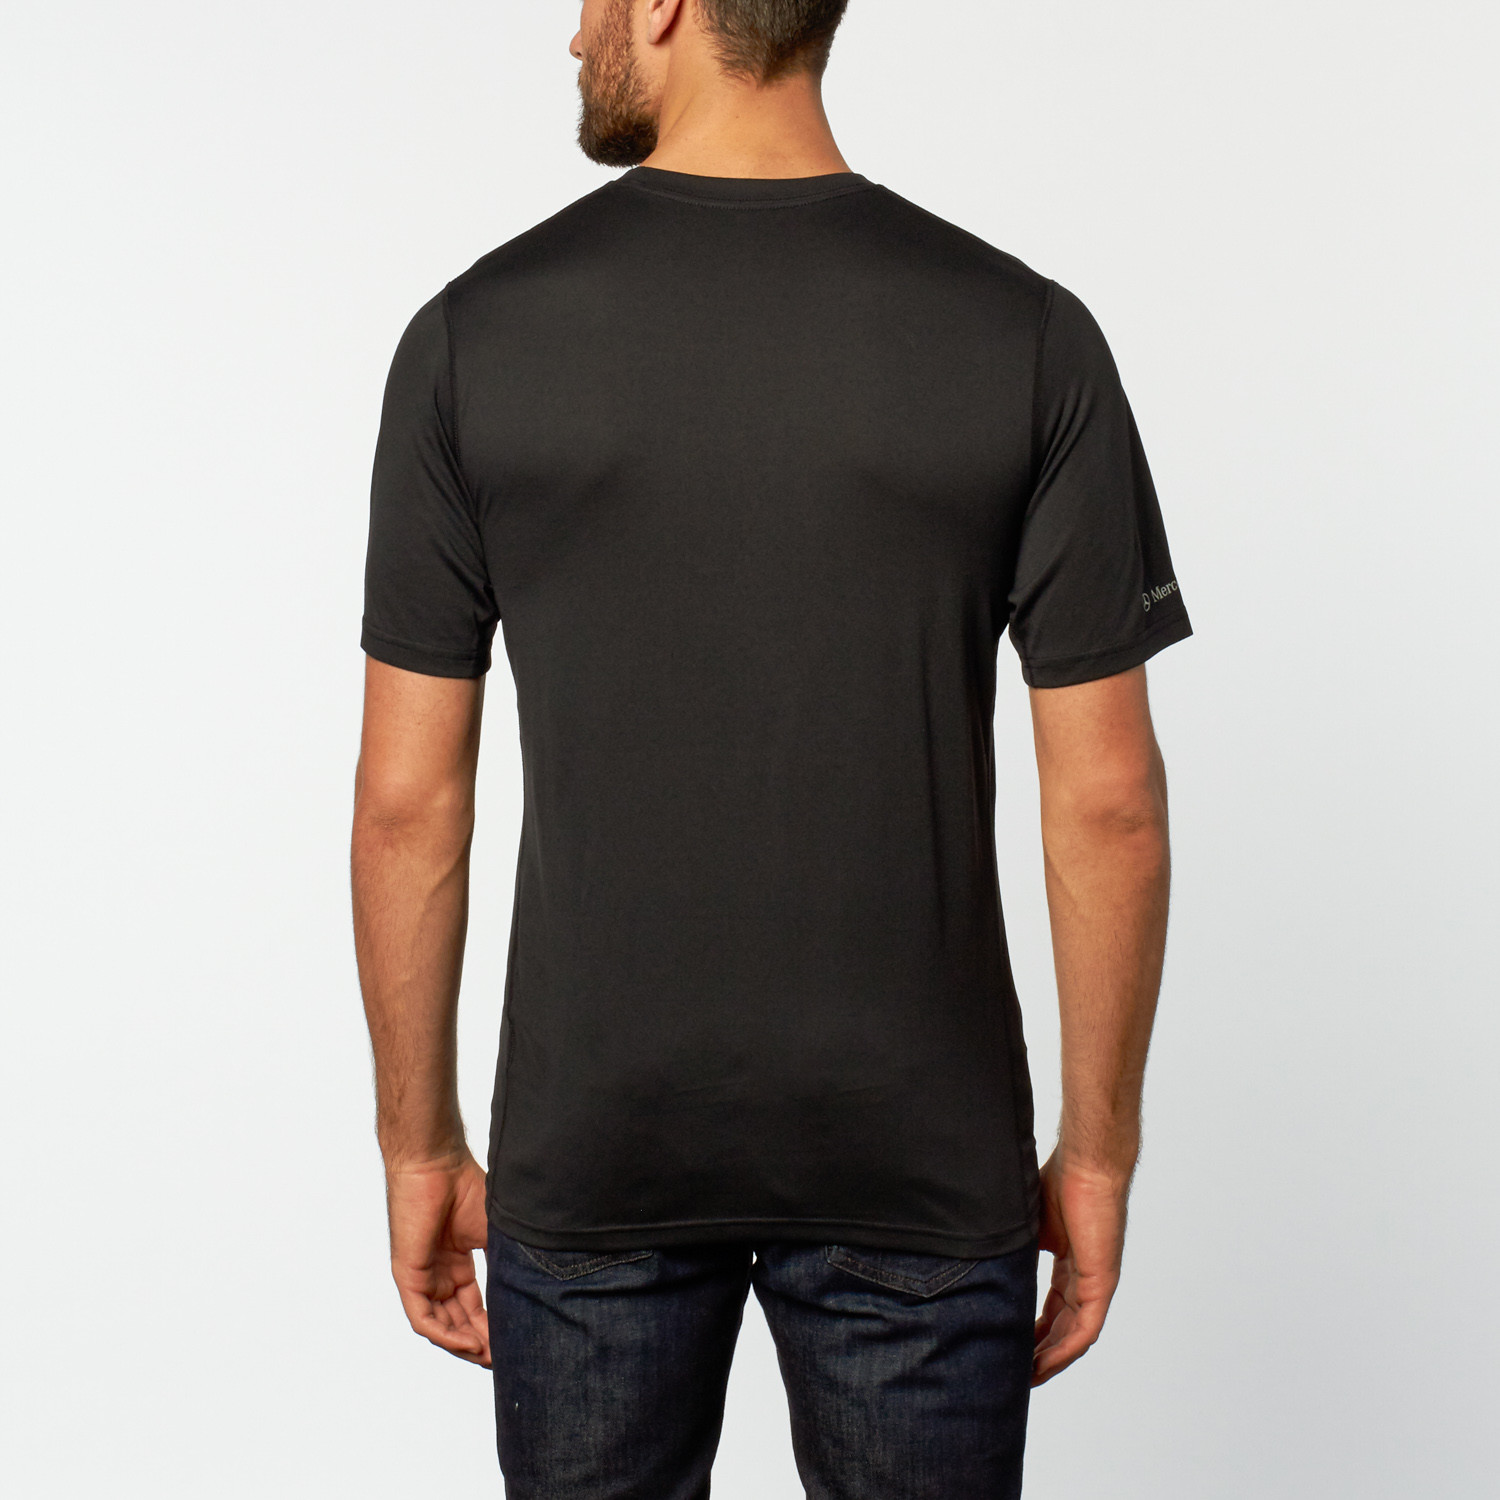 Nike performance training tee black s mercedes benz for Mercedes benz wear